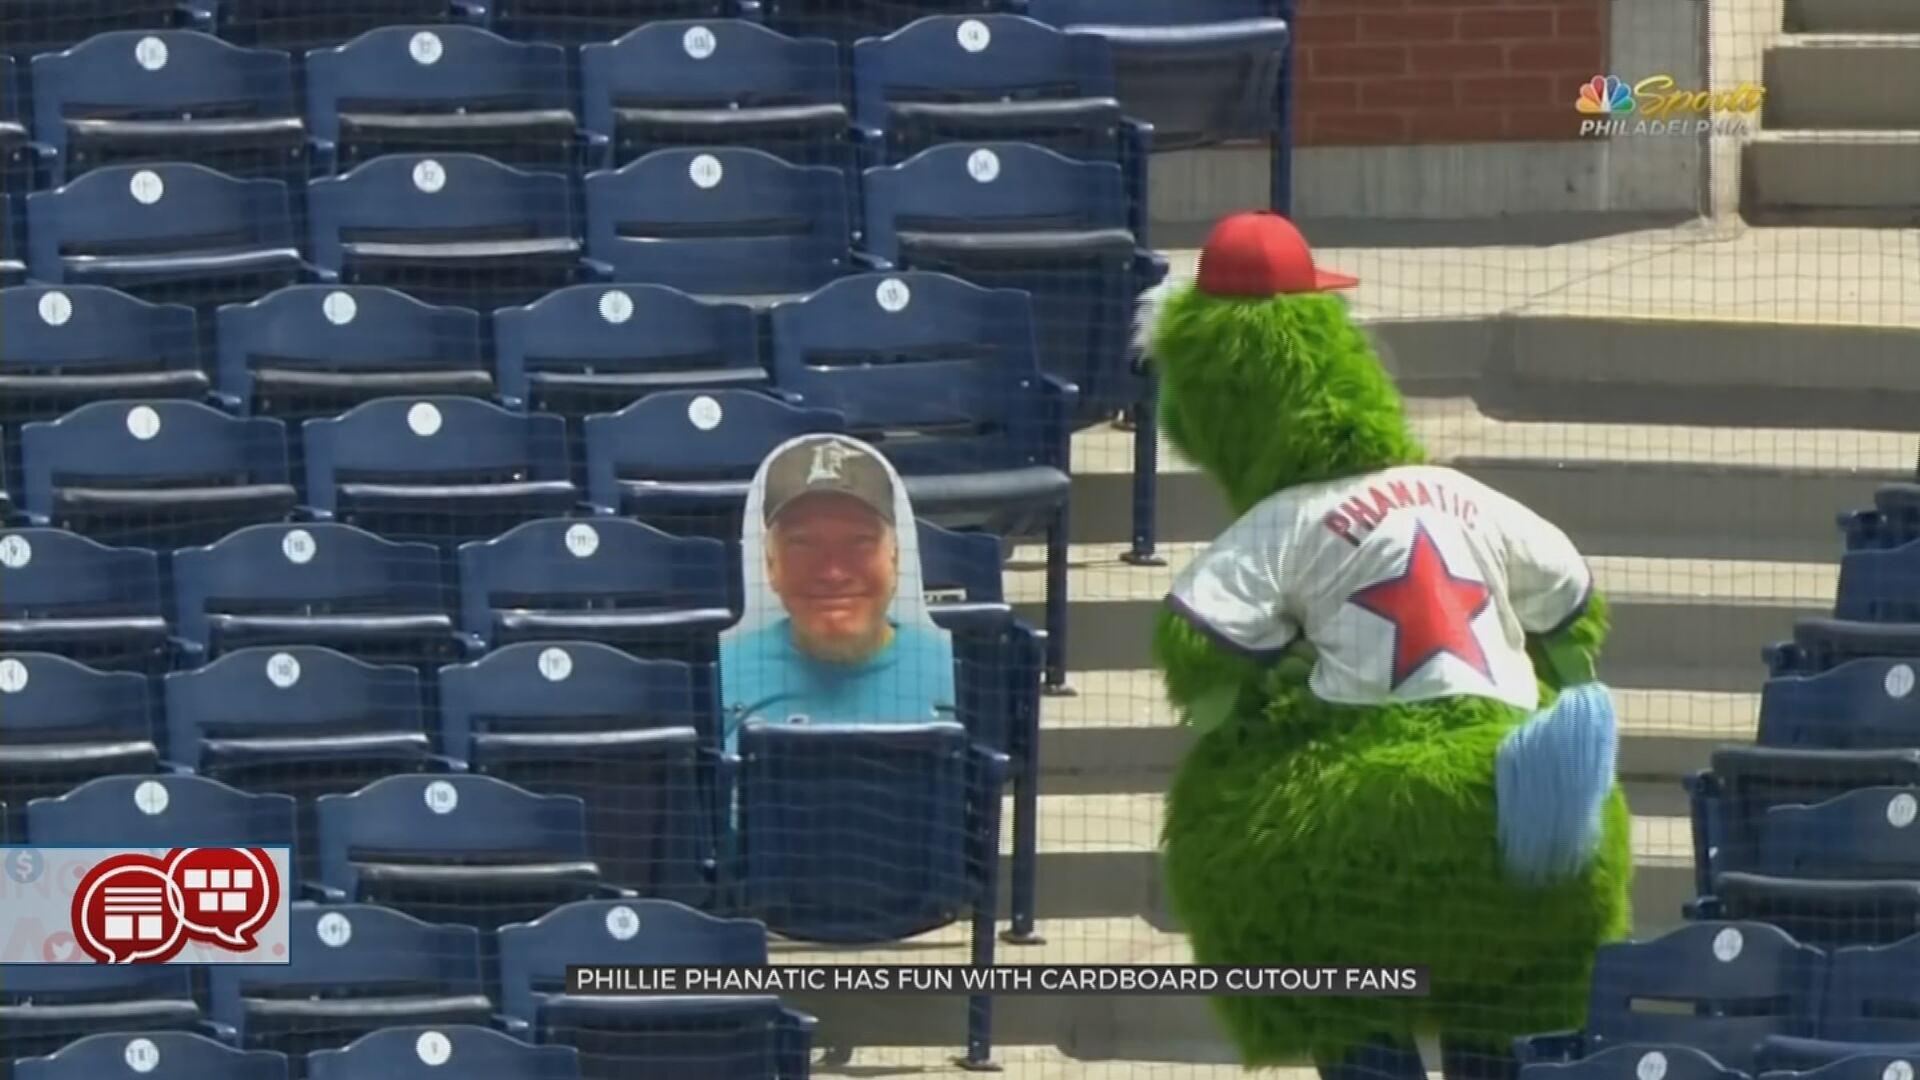 Something To Talk About: Cardboard Cutout Baseball Fans